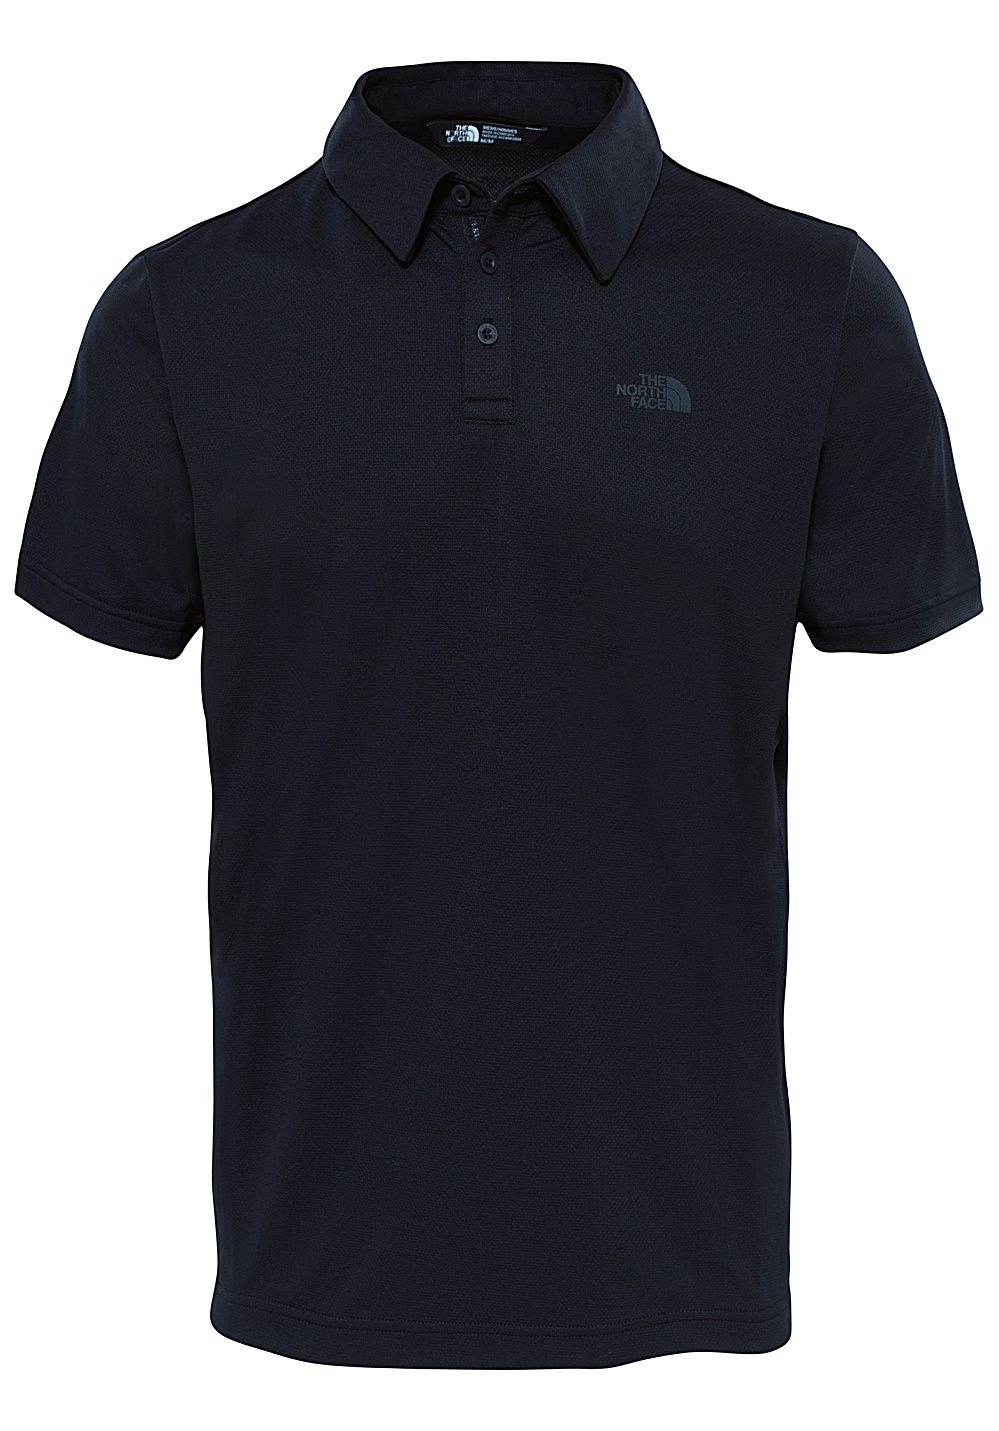 33c675182 THE NORTH FACE Tanken - Polo Shirt for Men - Black